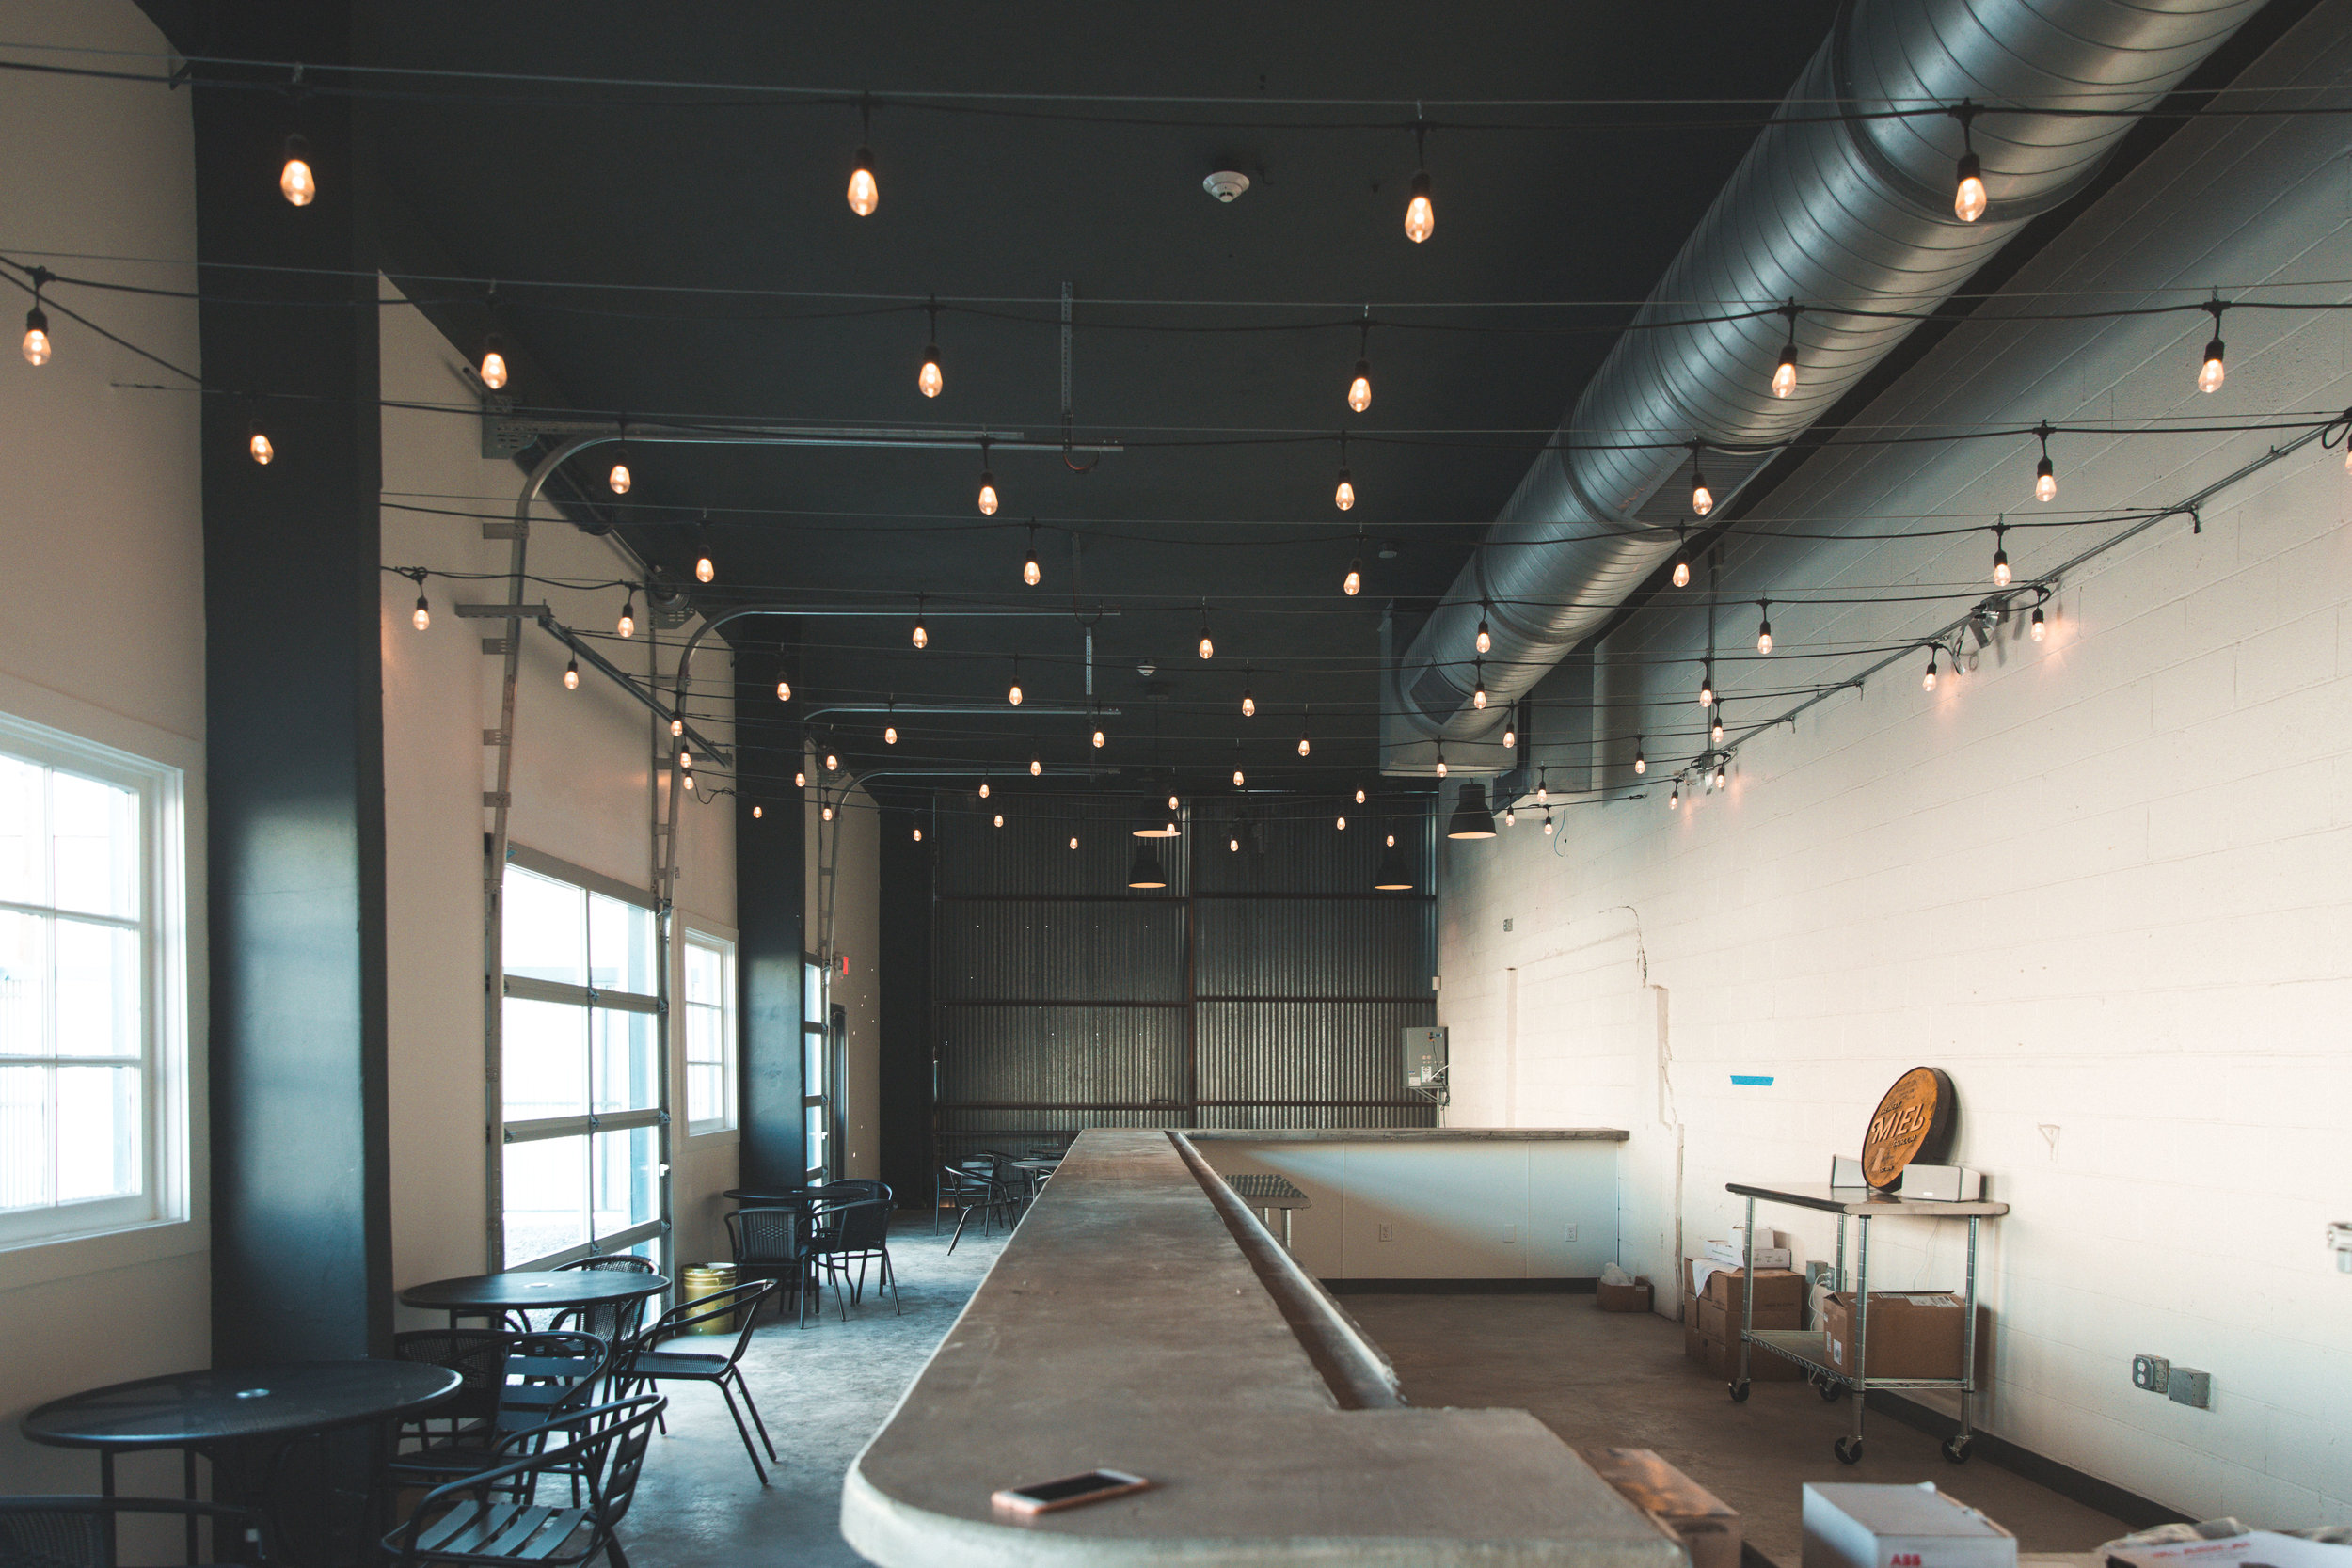 New Orleans_Miel Brewery_July 2018_Taproom view 1